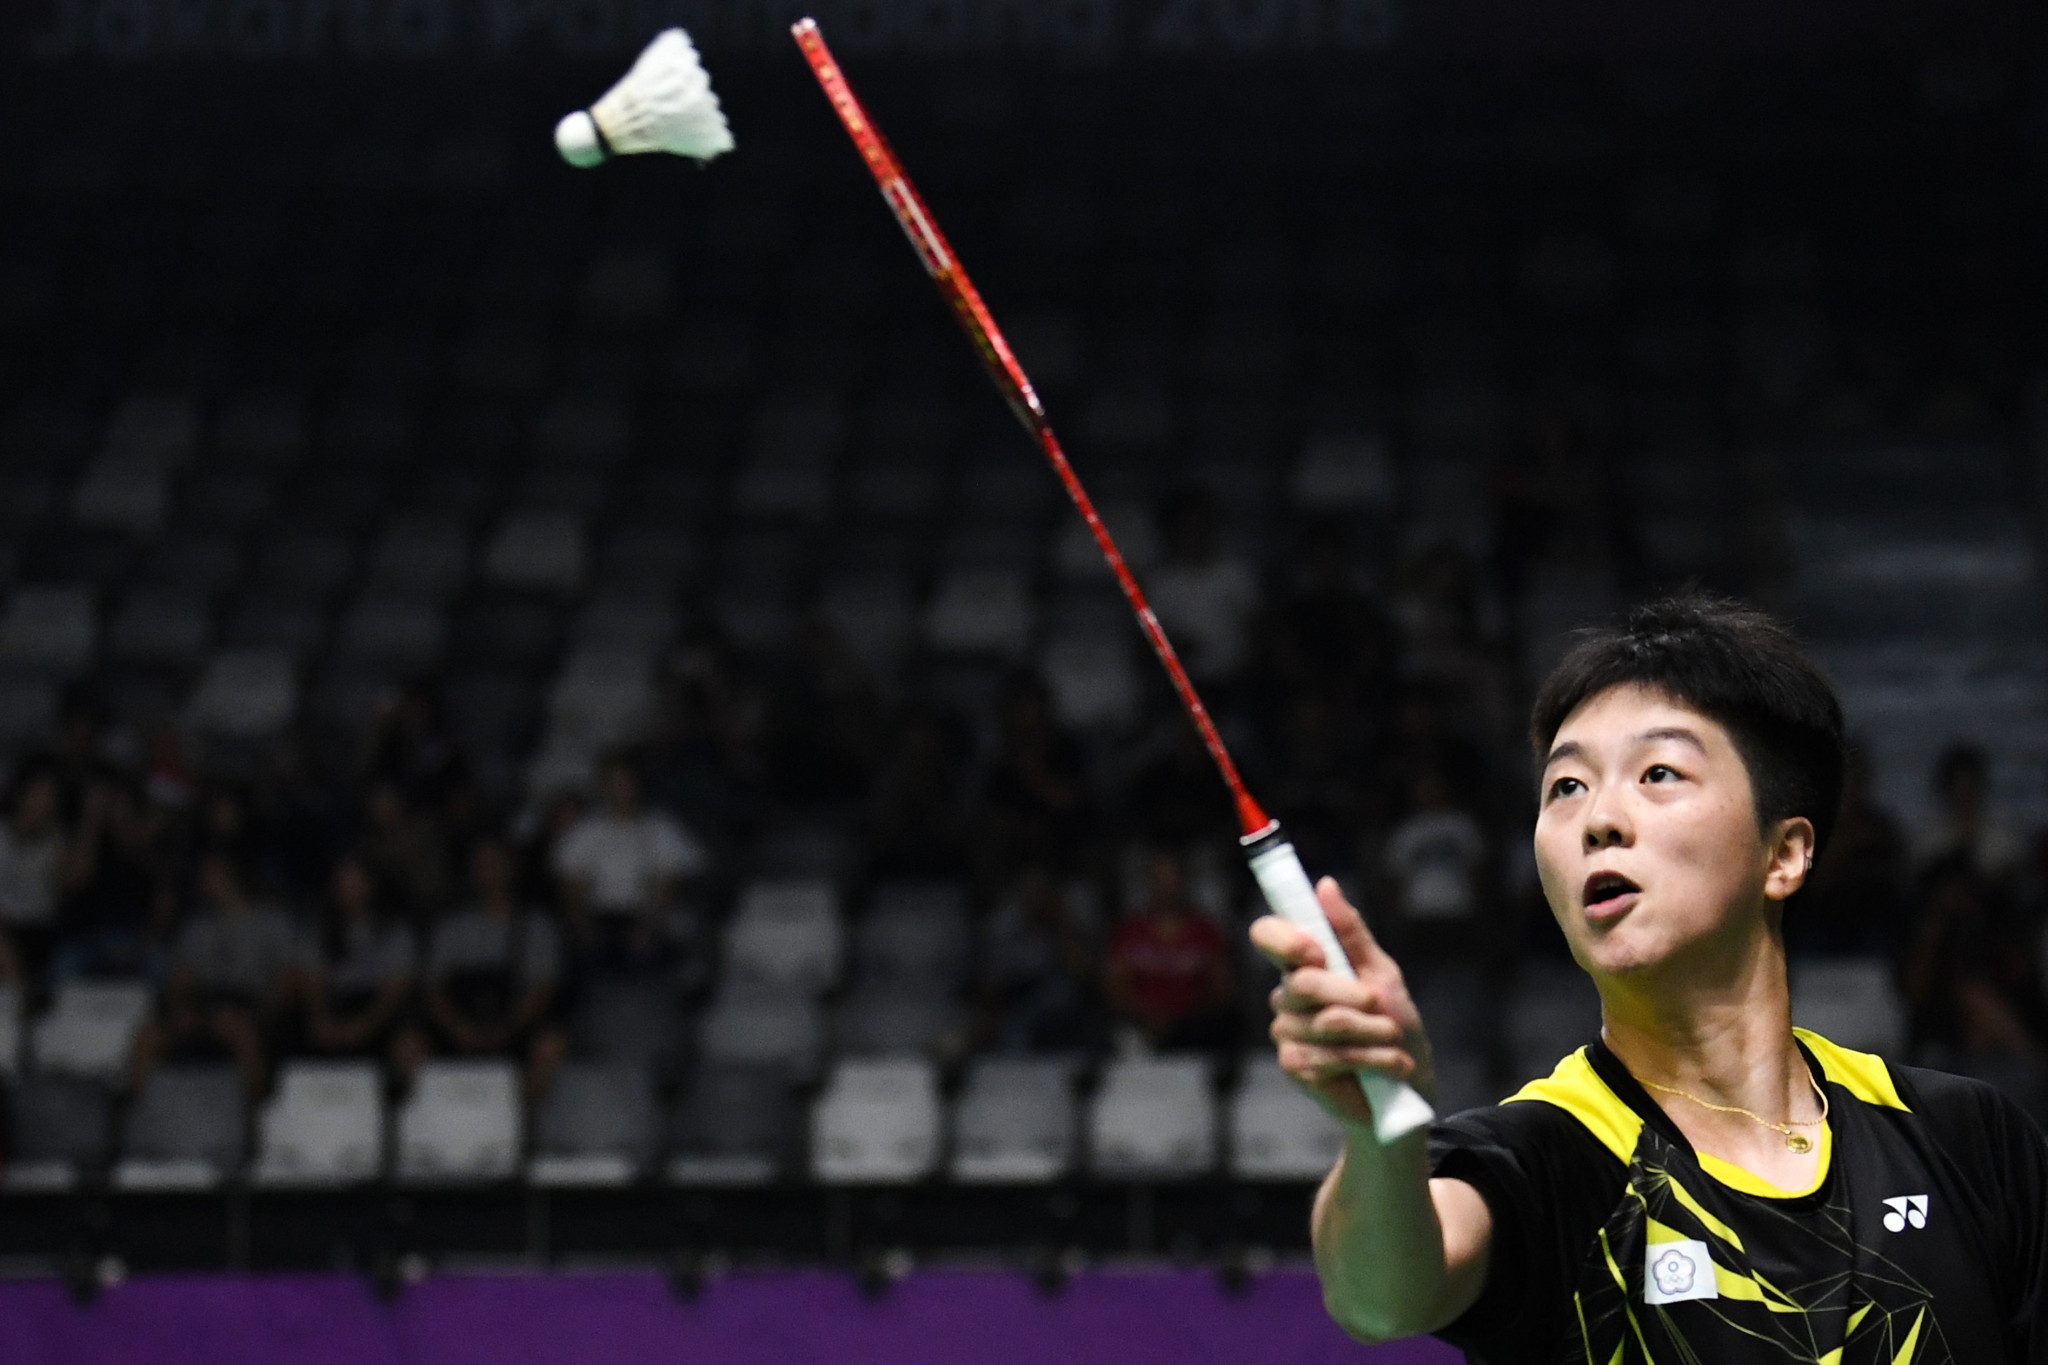 Chinese Taipei qualifer Pai Yu-po claimed one of the biggest wins of her career  ©Getty Images